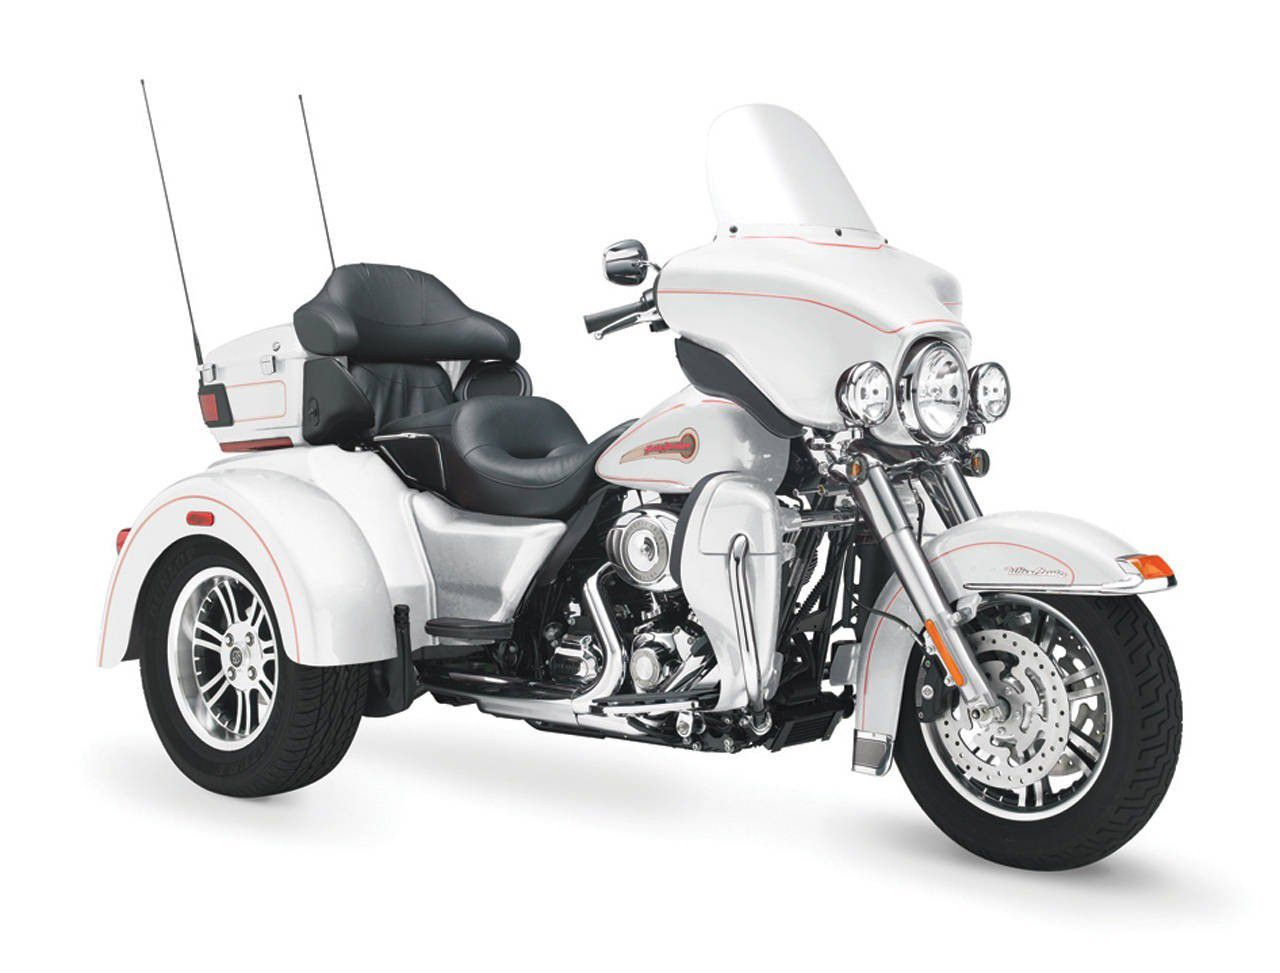 harley davidson tri glide trikes beauty white harley davidson tri glide pinterest harley. Black Bedroom Furniture Sets. Home Design Ideas